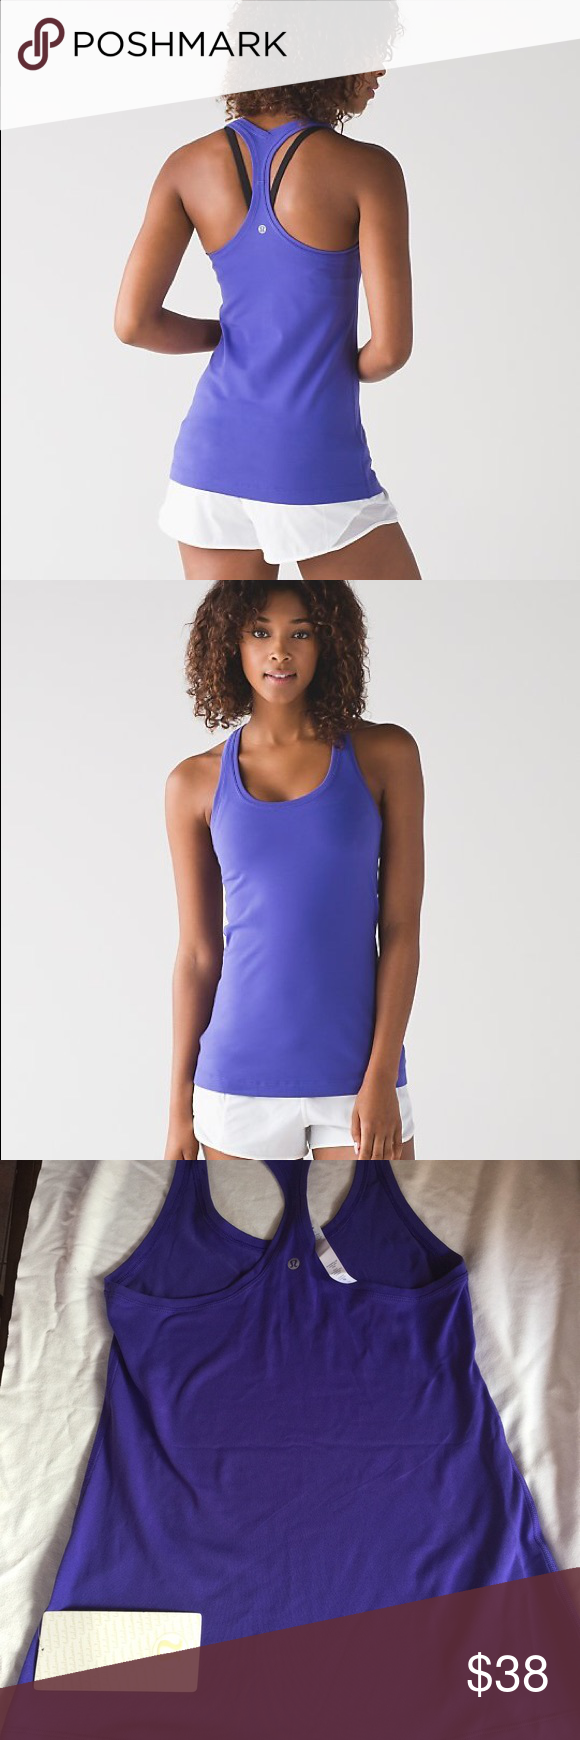 Lululemon racerback tank. NWTS. Size 10. Lululemon cool racerback ii tank. Size 10. NWTS. Color is purple. Cheaper on Ⓜ️ lululemon athletica Tops Tank Tops